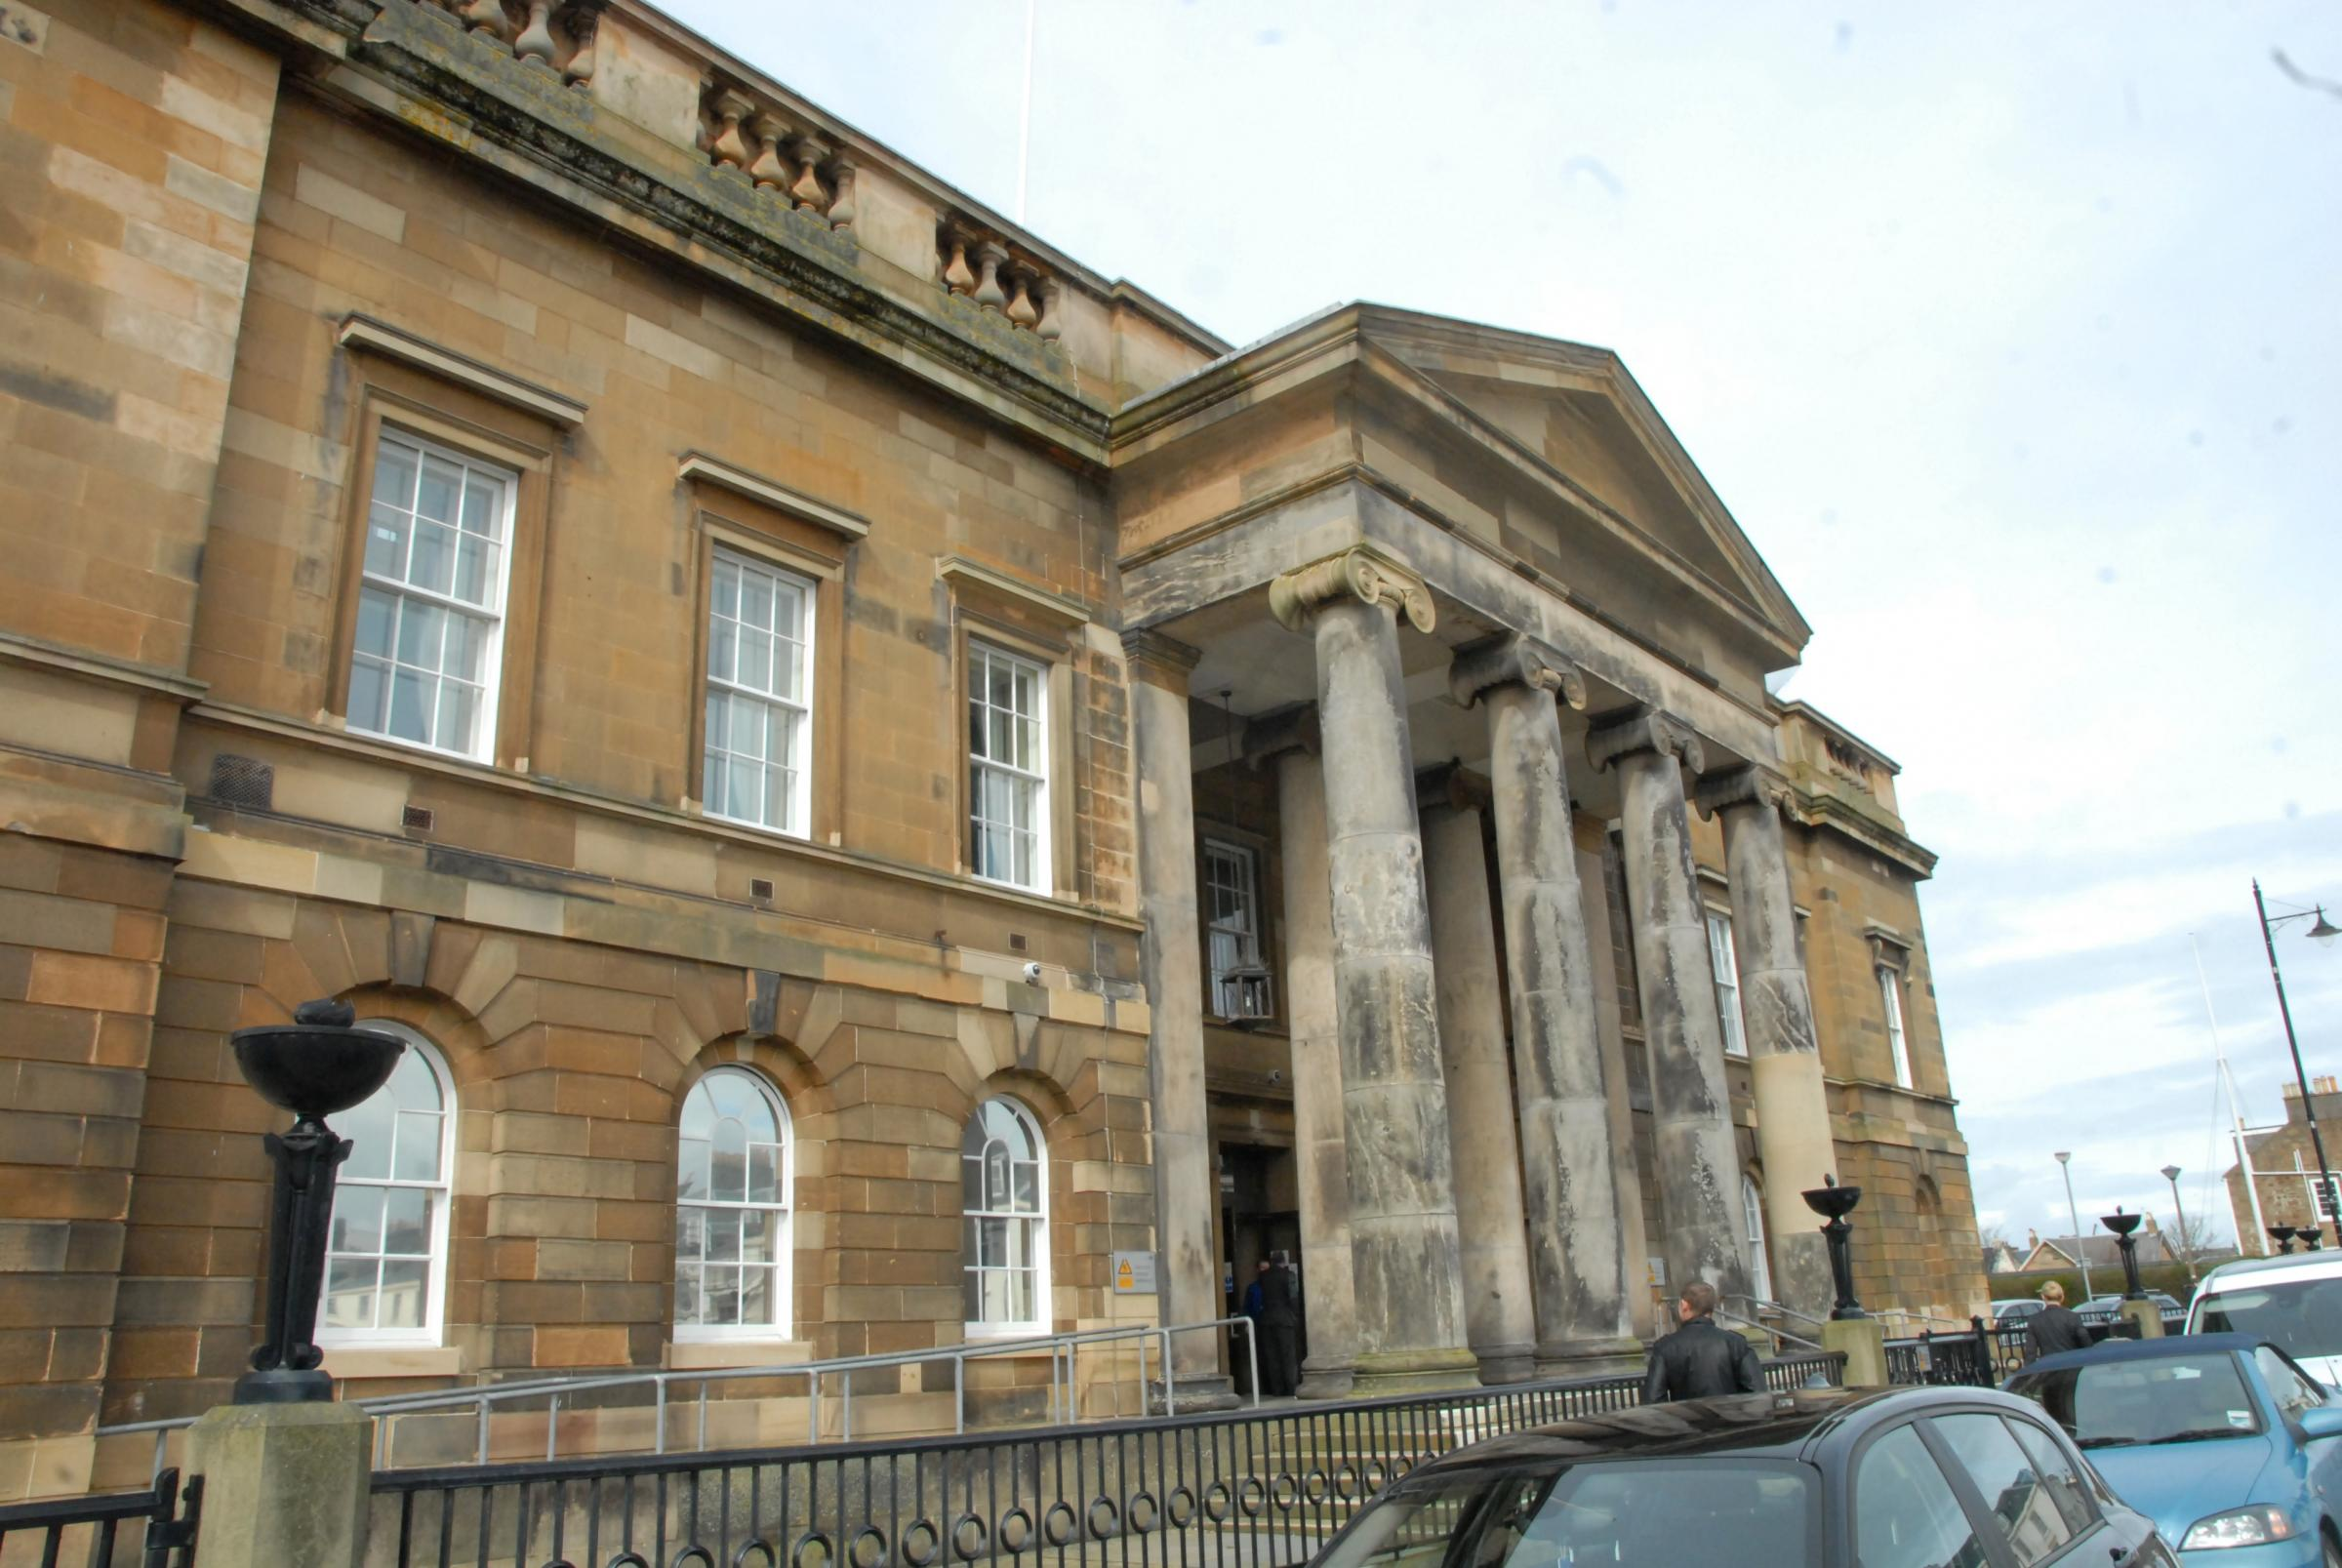 Ayr man gets six months for police assault